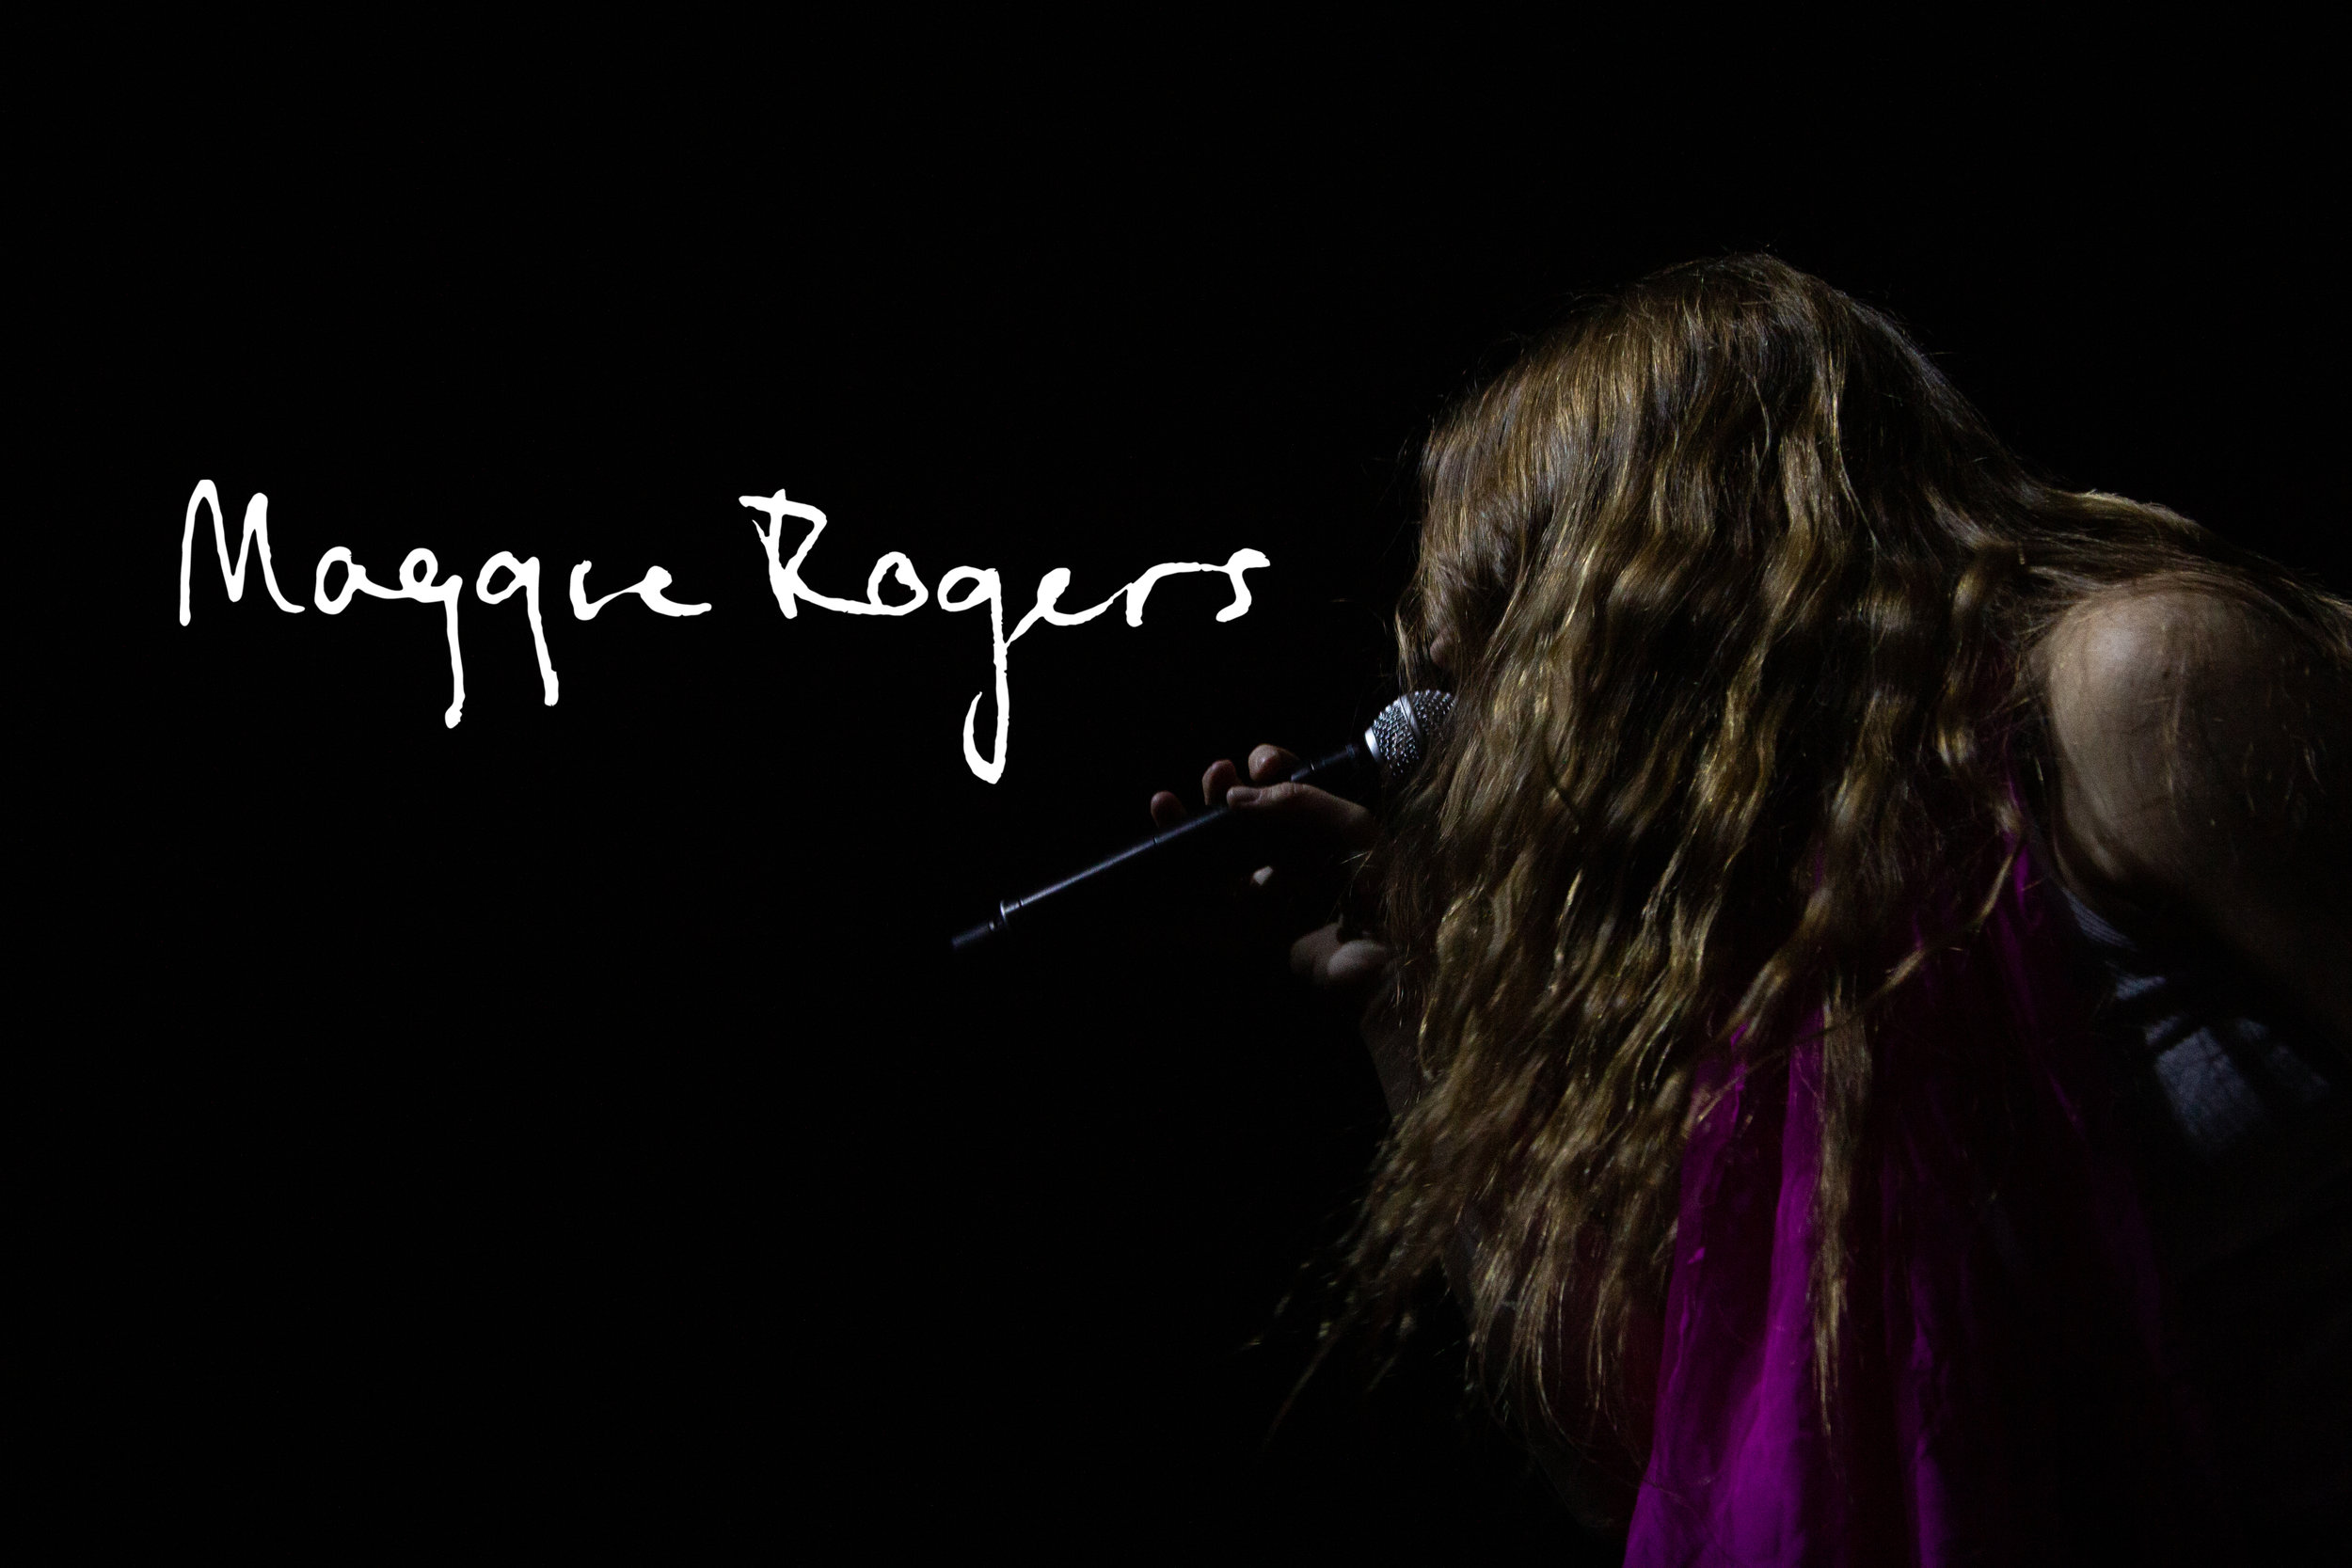 Maggie-Rodgers-title.jpg